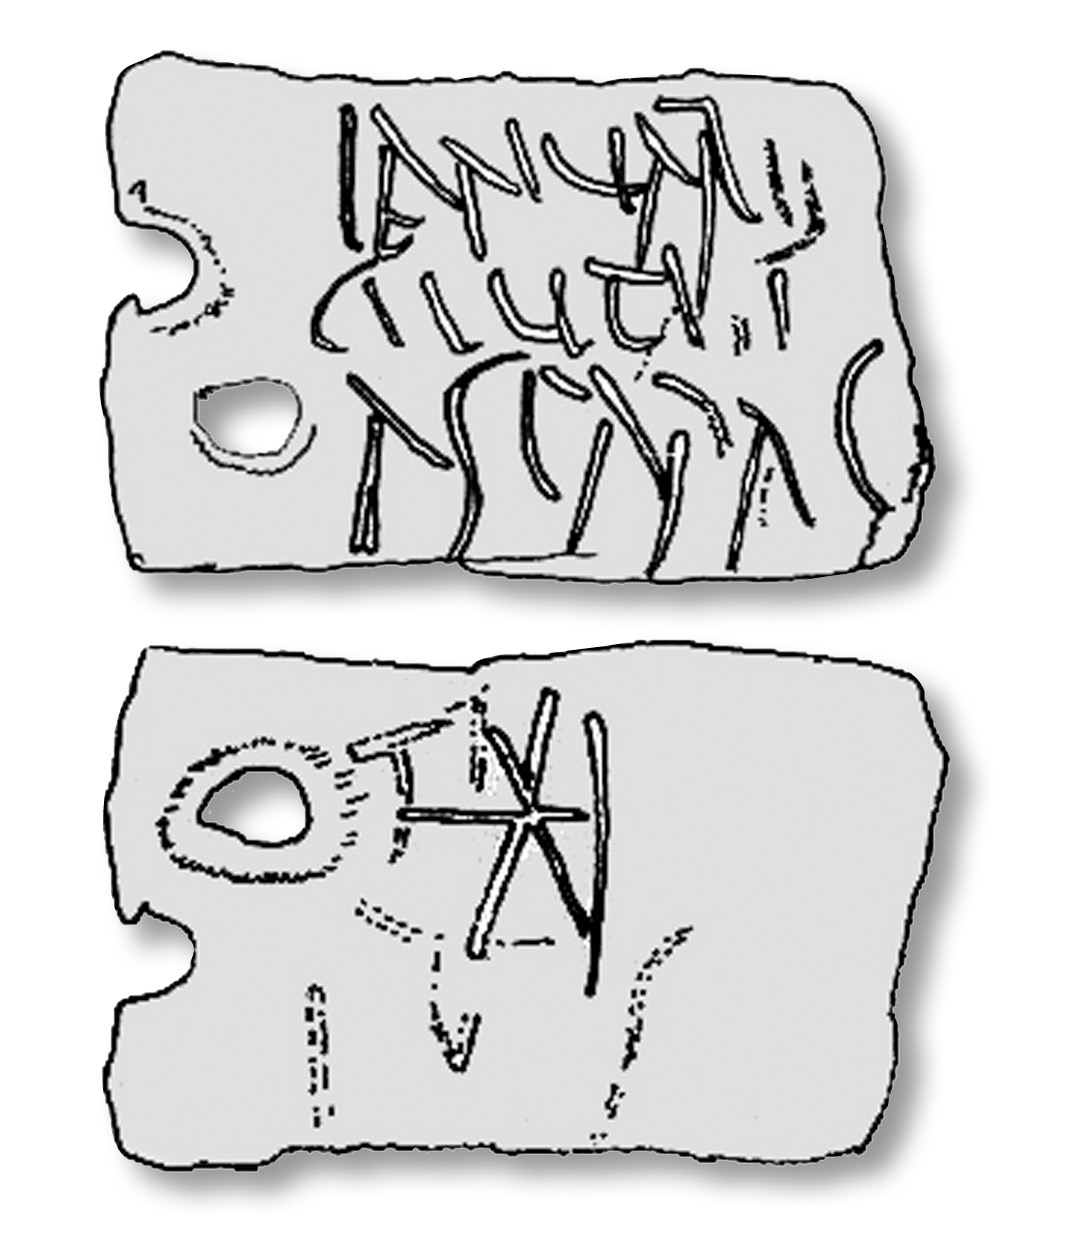 left A lead tag from Trier, measuring 2.4cm by 1.6cm. The front reads: 'Ianuari / Ciuti / asparagus', giving the name of the seller or producer, while the back reads *I. The first mark denotes a denarius, while the second is the number '1': the price was, accordingly, one denarius.